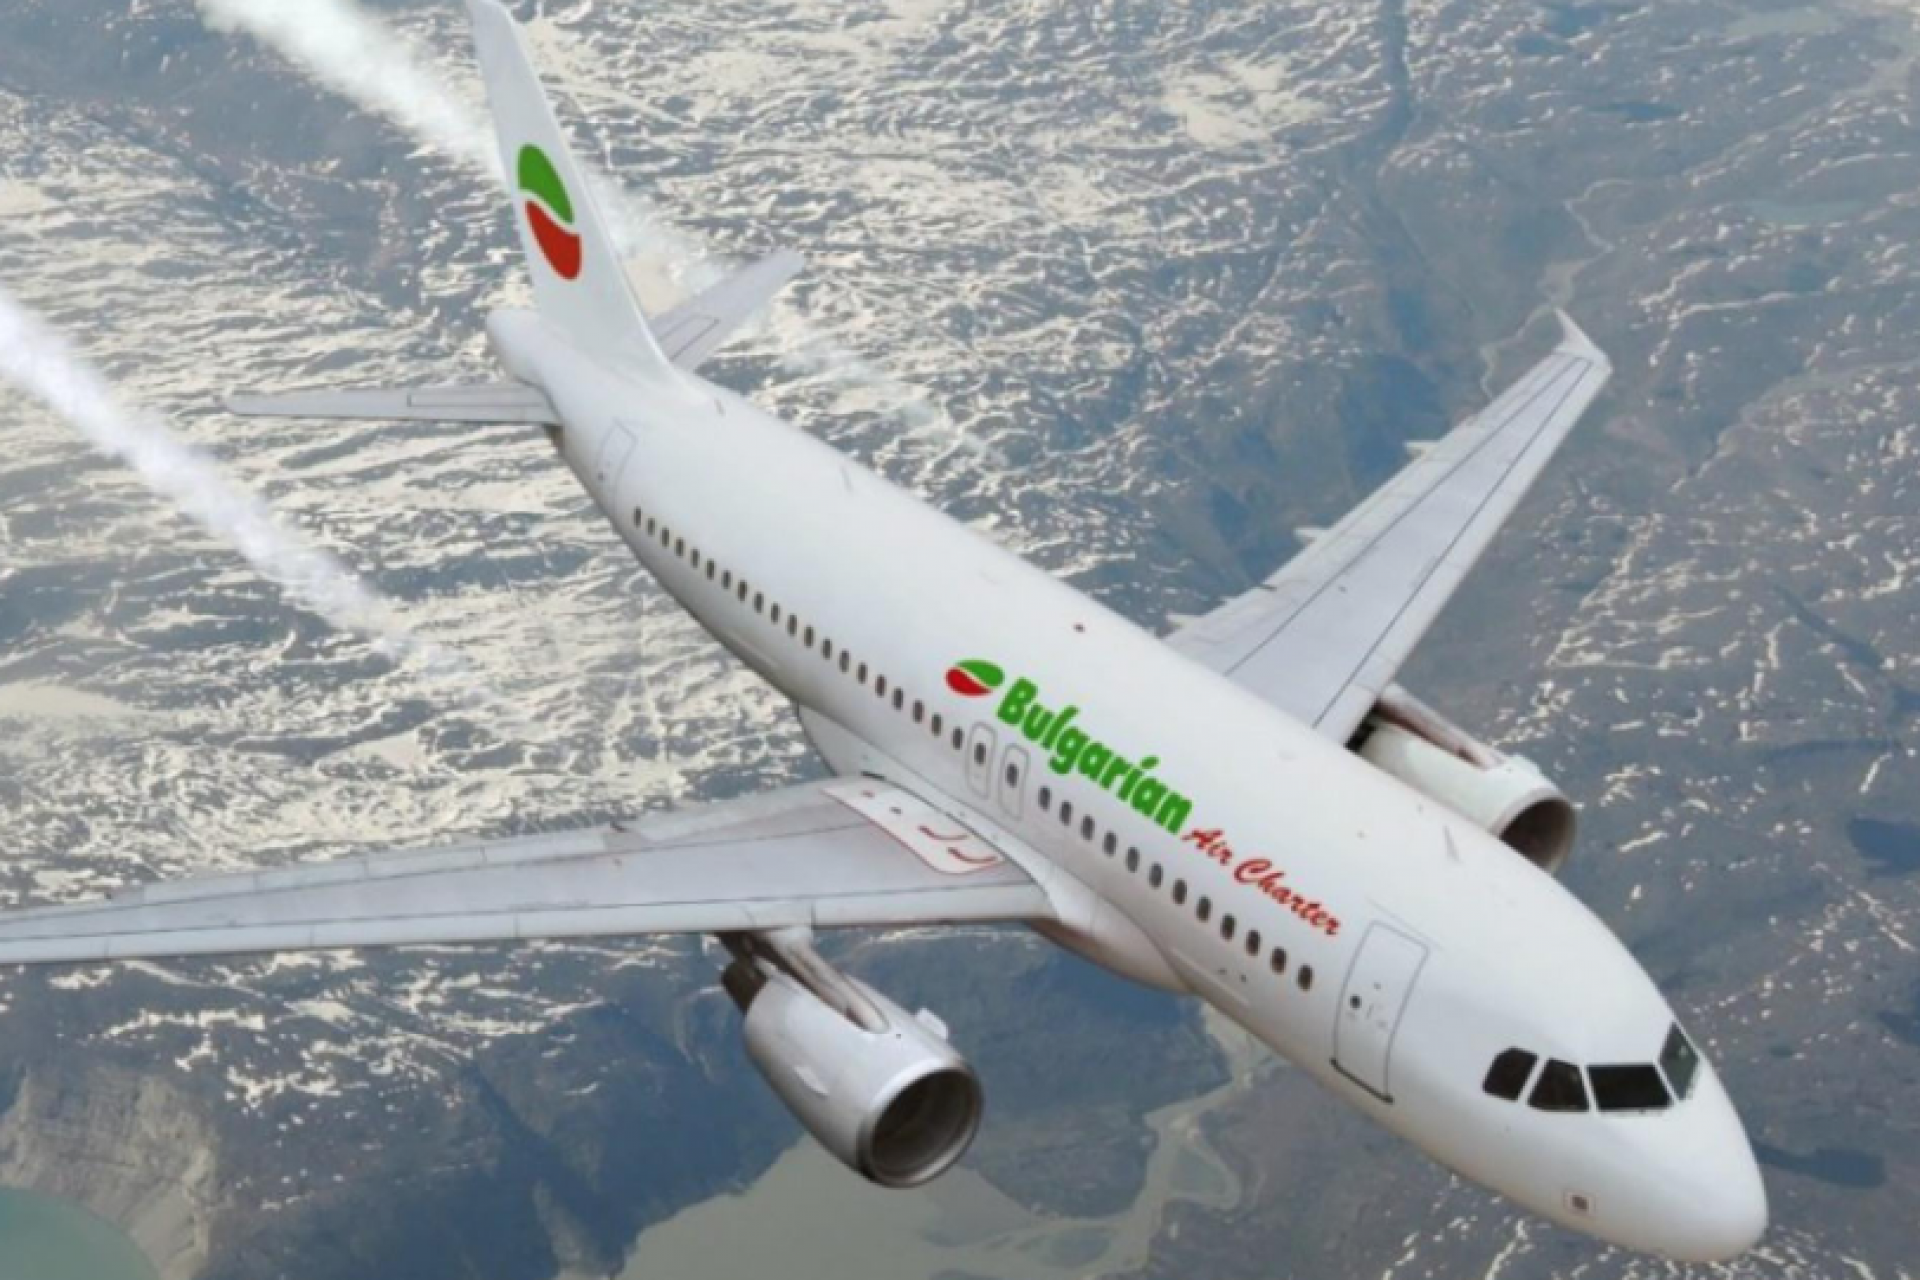 Bulgarian airlines have canceled flights to Ukraine